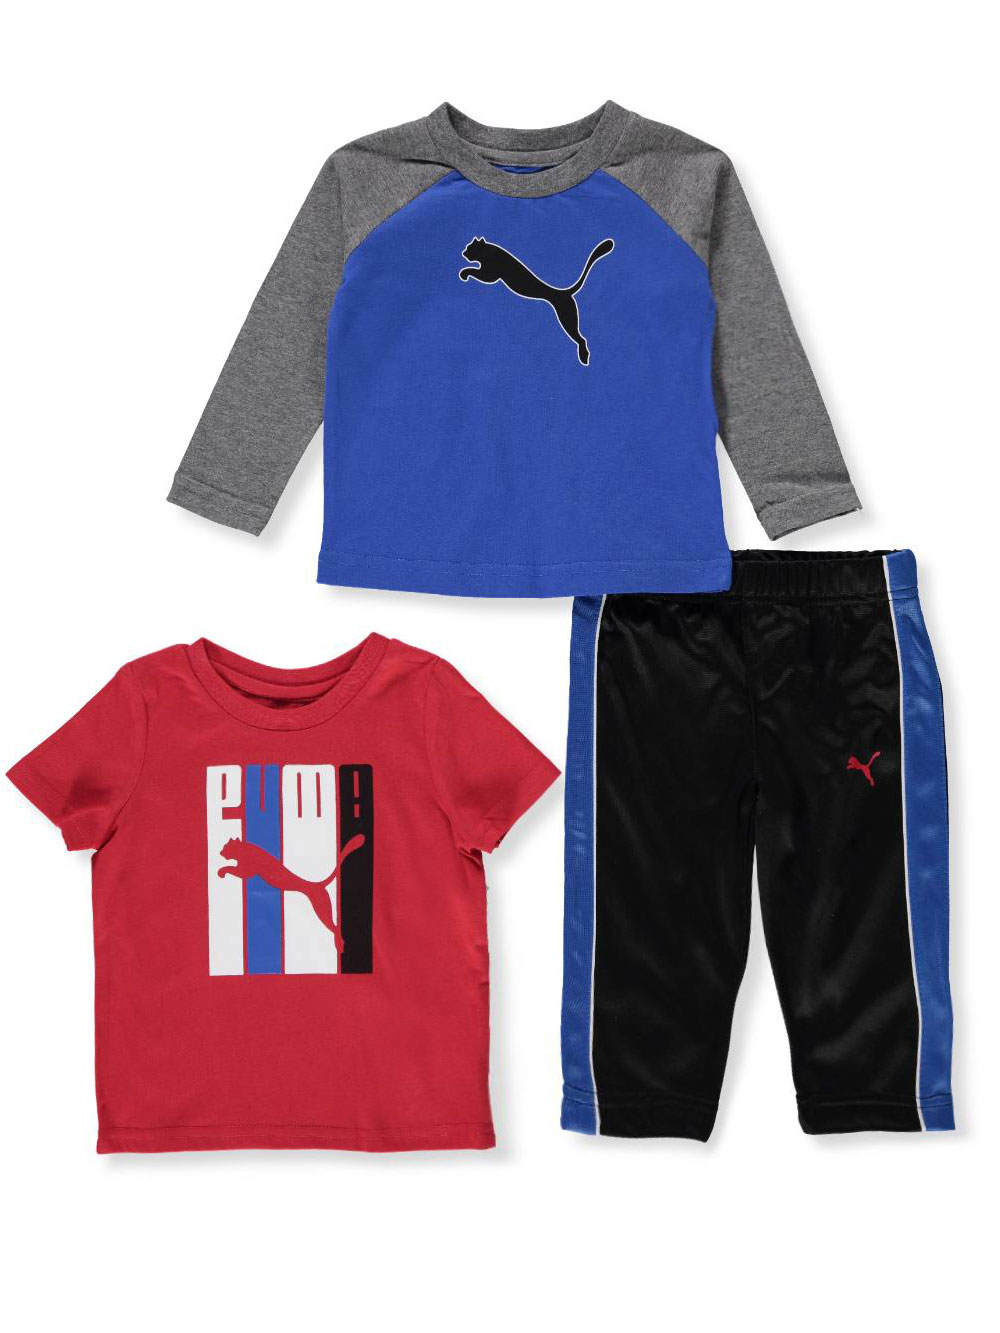 eb78be6d4 Baby Boys' 3-Piece Pants Set Outfit by Puma in Royal blue multi from  Cookie's Kids